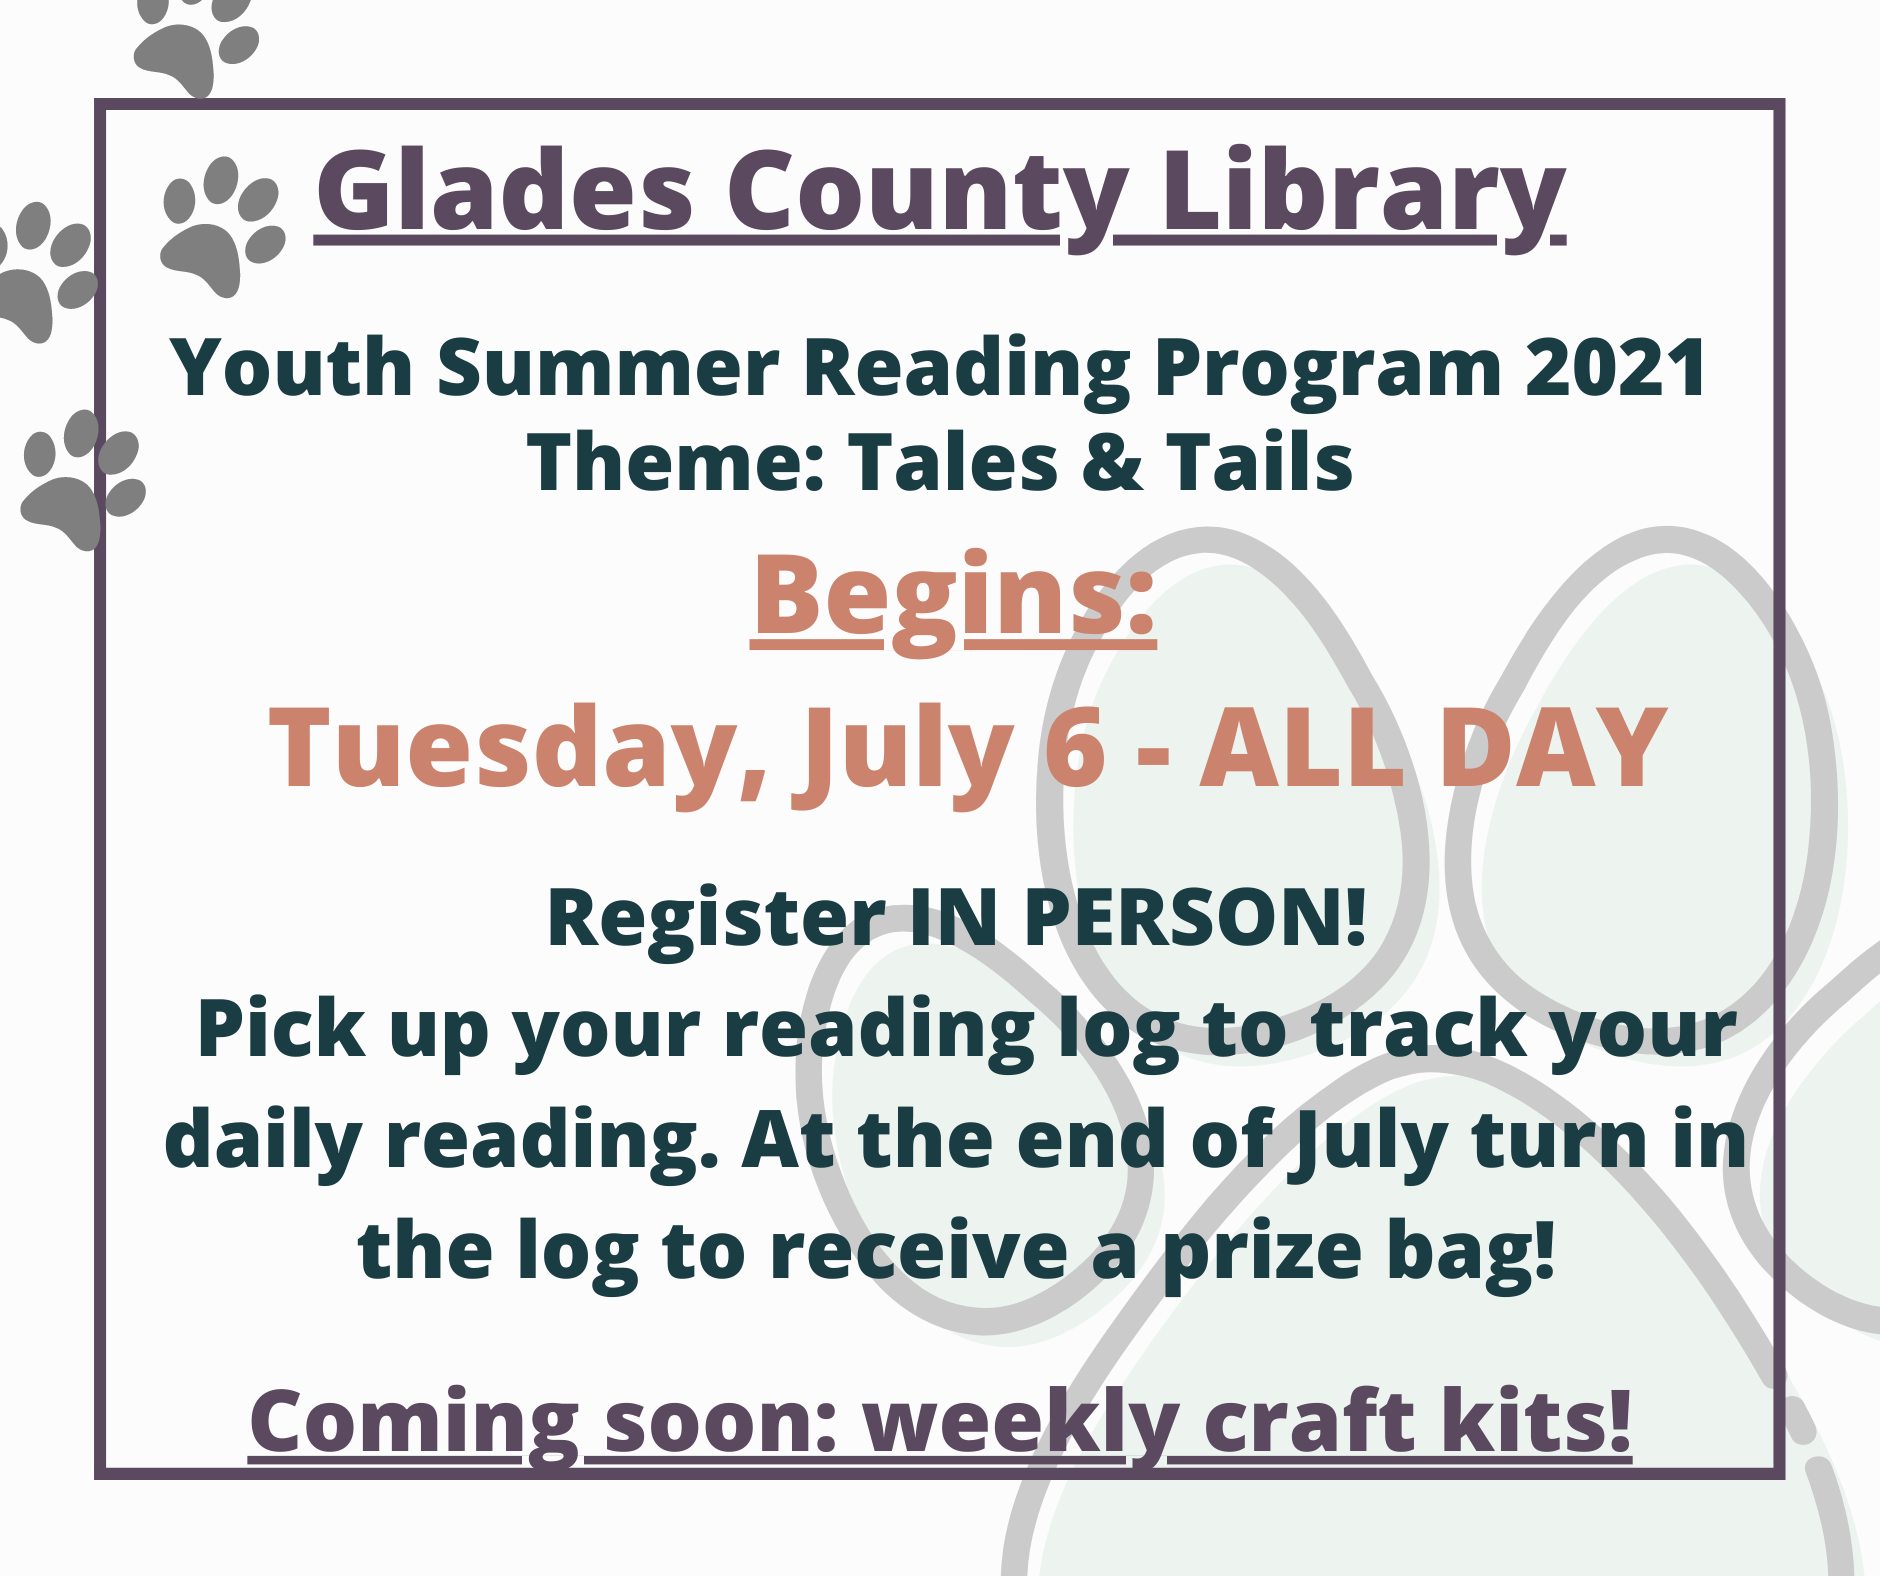 Beginning Tuesday, July 6 - ALL DAY - Register IN PERSON! - Pick up your reading log to track your daily reading. At the end of July turn in the log to receive a prize bag!  Coming soon: weekly craft kits!